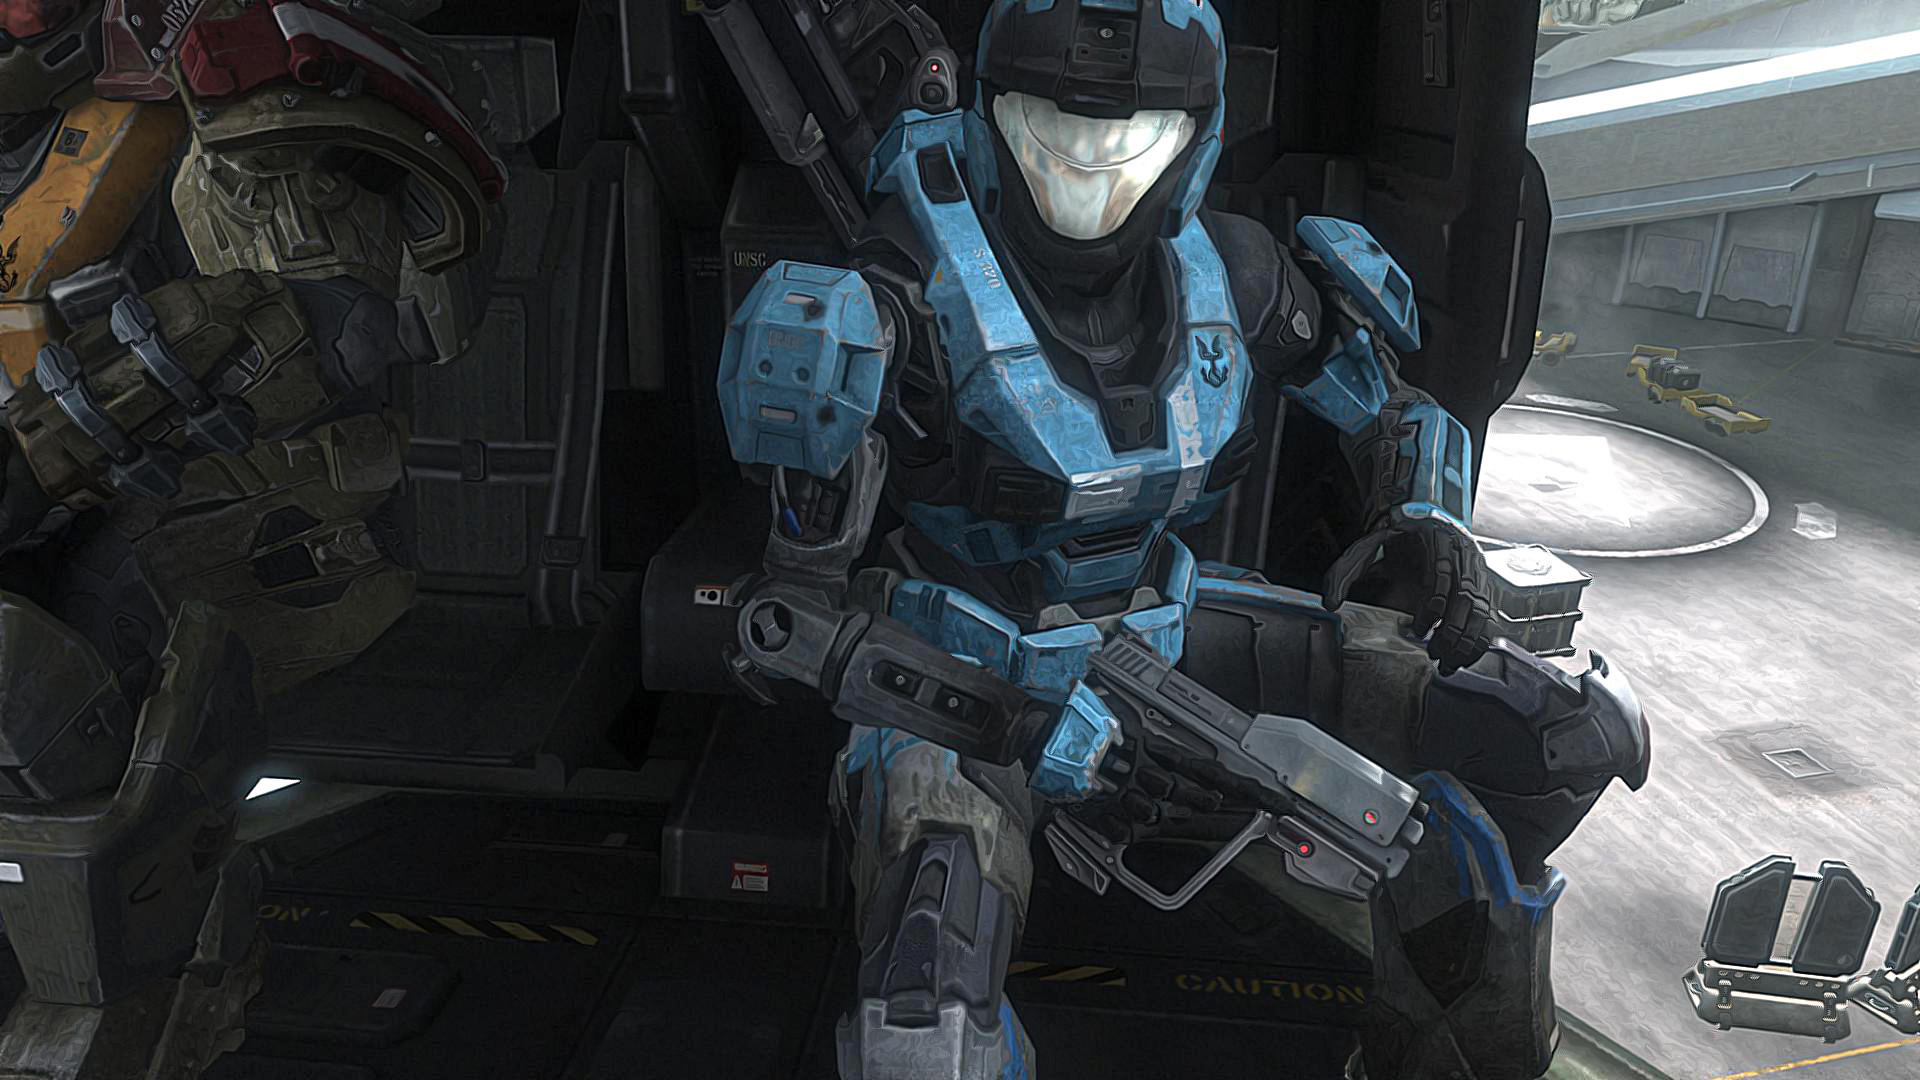 1920x1080 HDWP-44: Halo Reach Emile Wallpapers, Halo Reach Emile Collection .